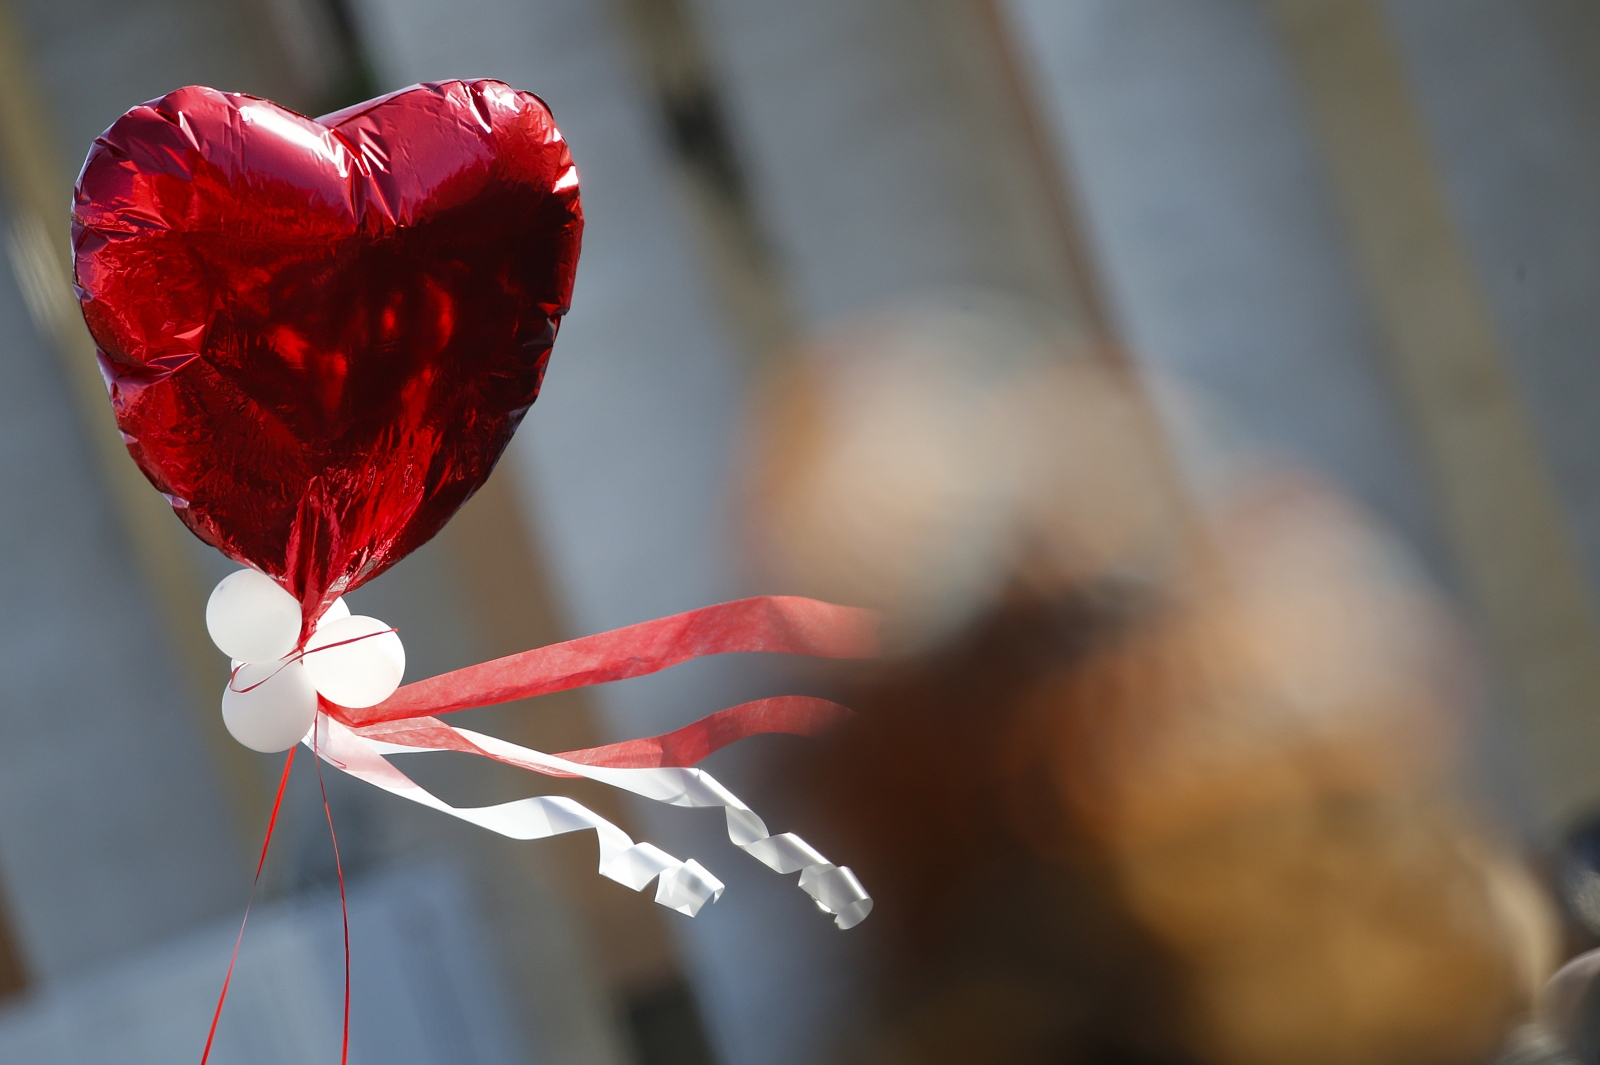 how to buy valentines day gifts online without falling victim to scams and hacks